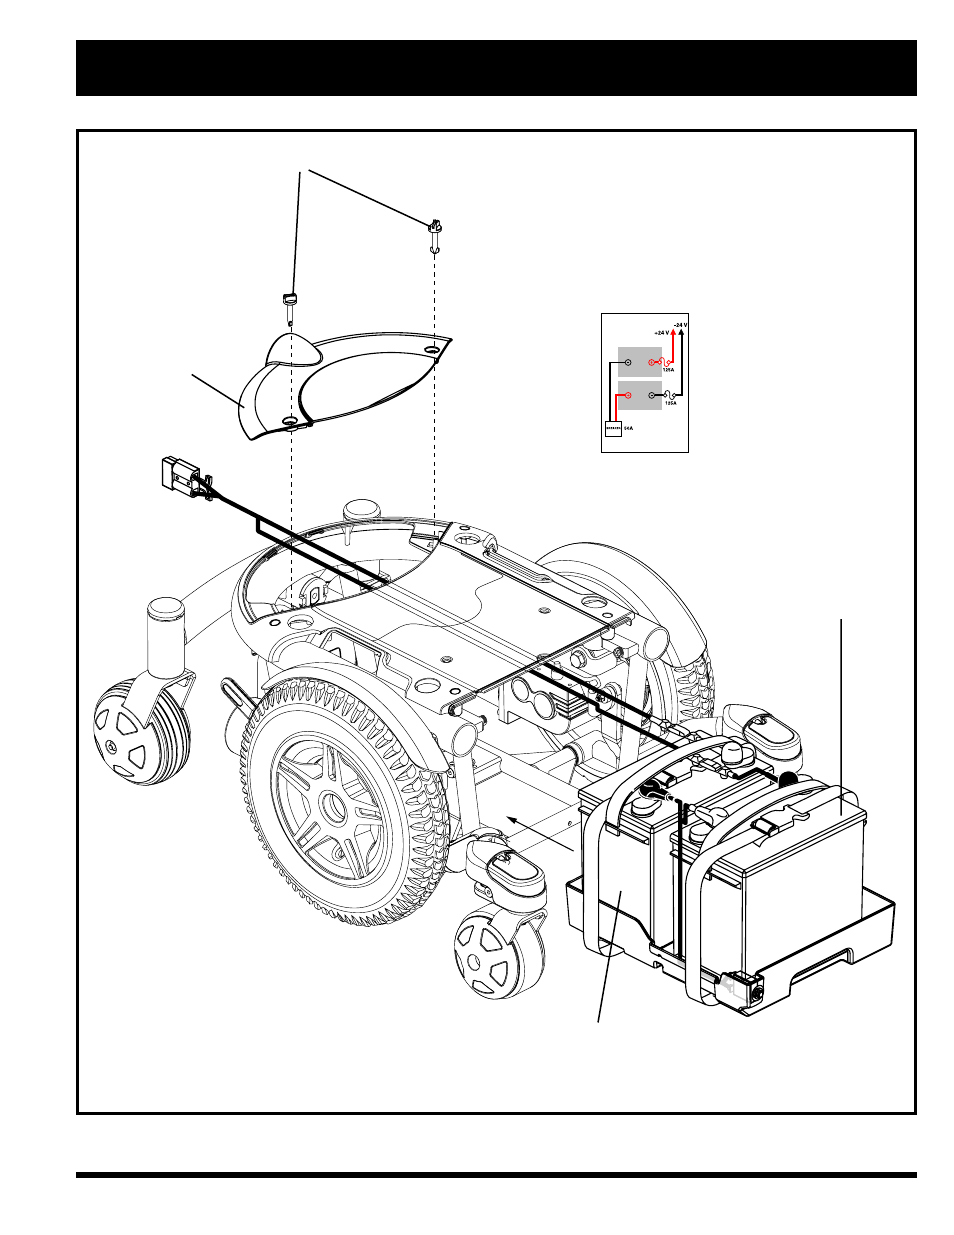 pride-mobility-jazzy-600-xl-page39 Yamaha Hp Wiring Diagram on suzuki quadrunner 160 parts diagram, yamaha solenoid diagram, yamaha steering diagram, yamaha motor diagram, yamaha ignition diagram, yamaha wiring code, yamaha schematics,